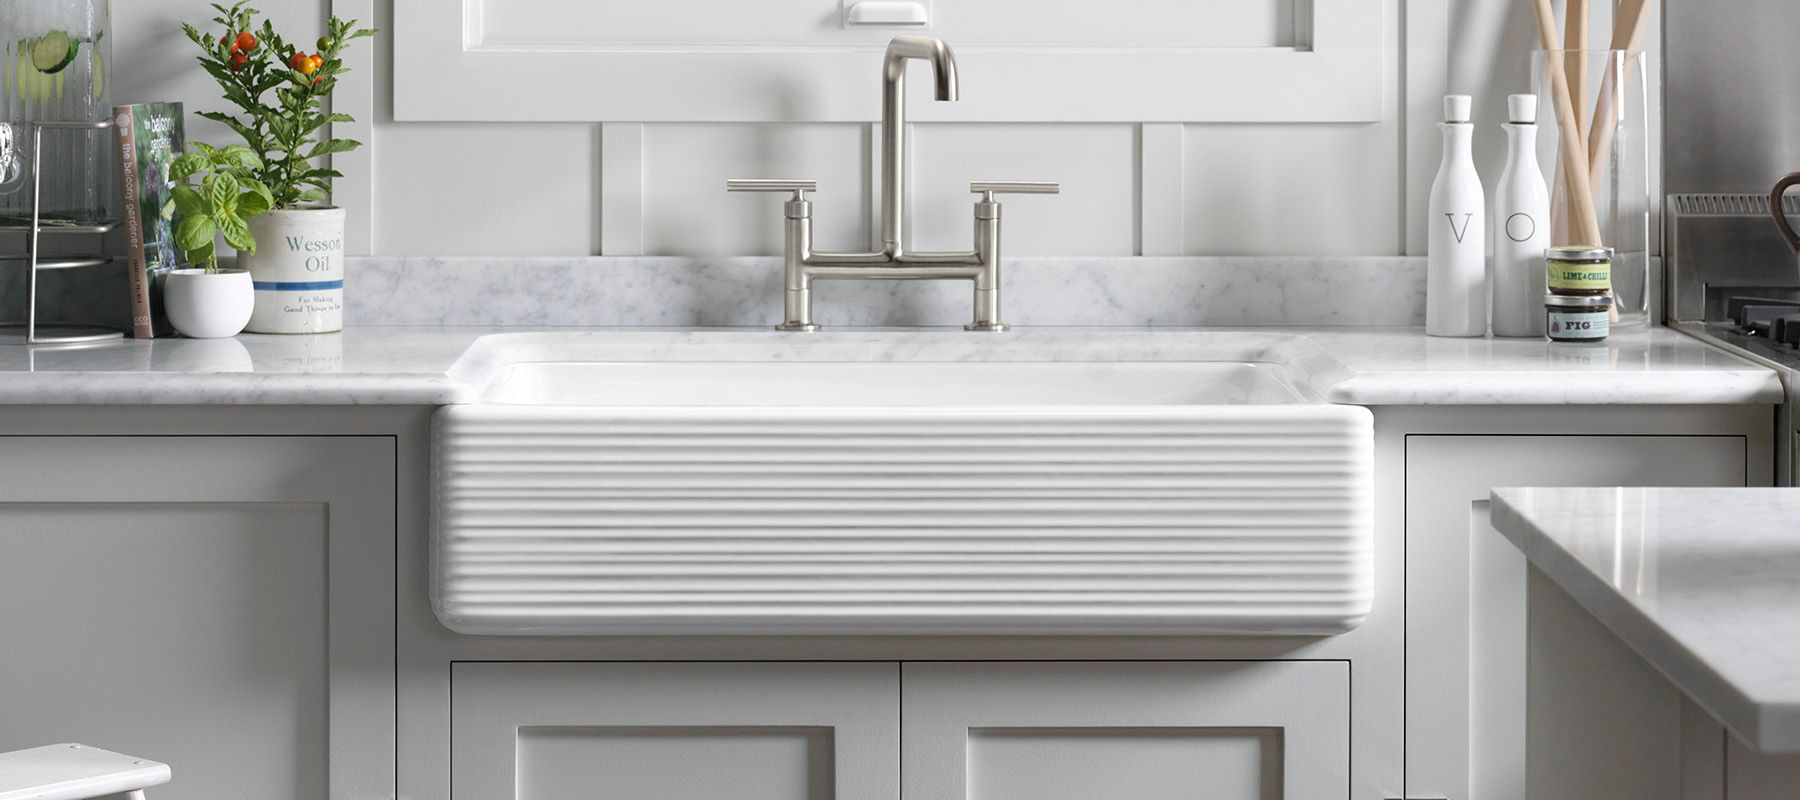 Single Bowl Kitchen Sinks | Kitchen | KOHLER